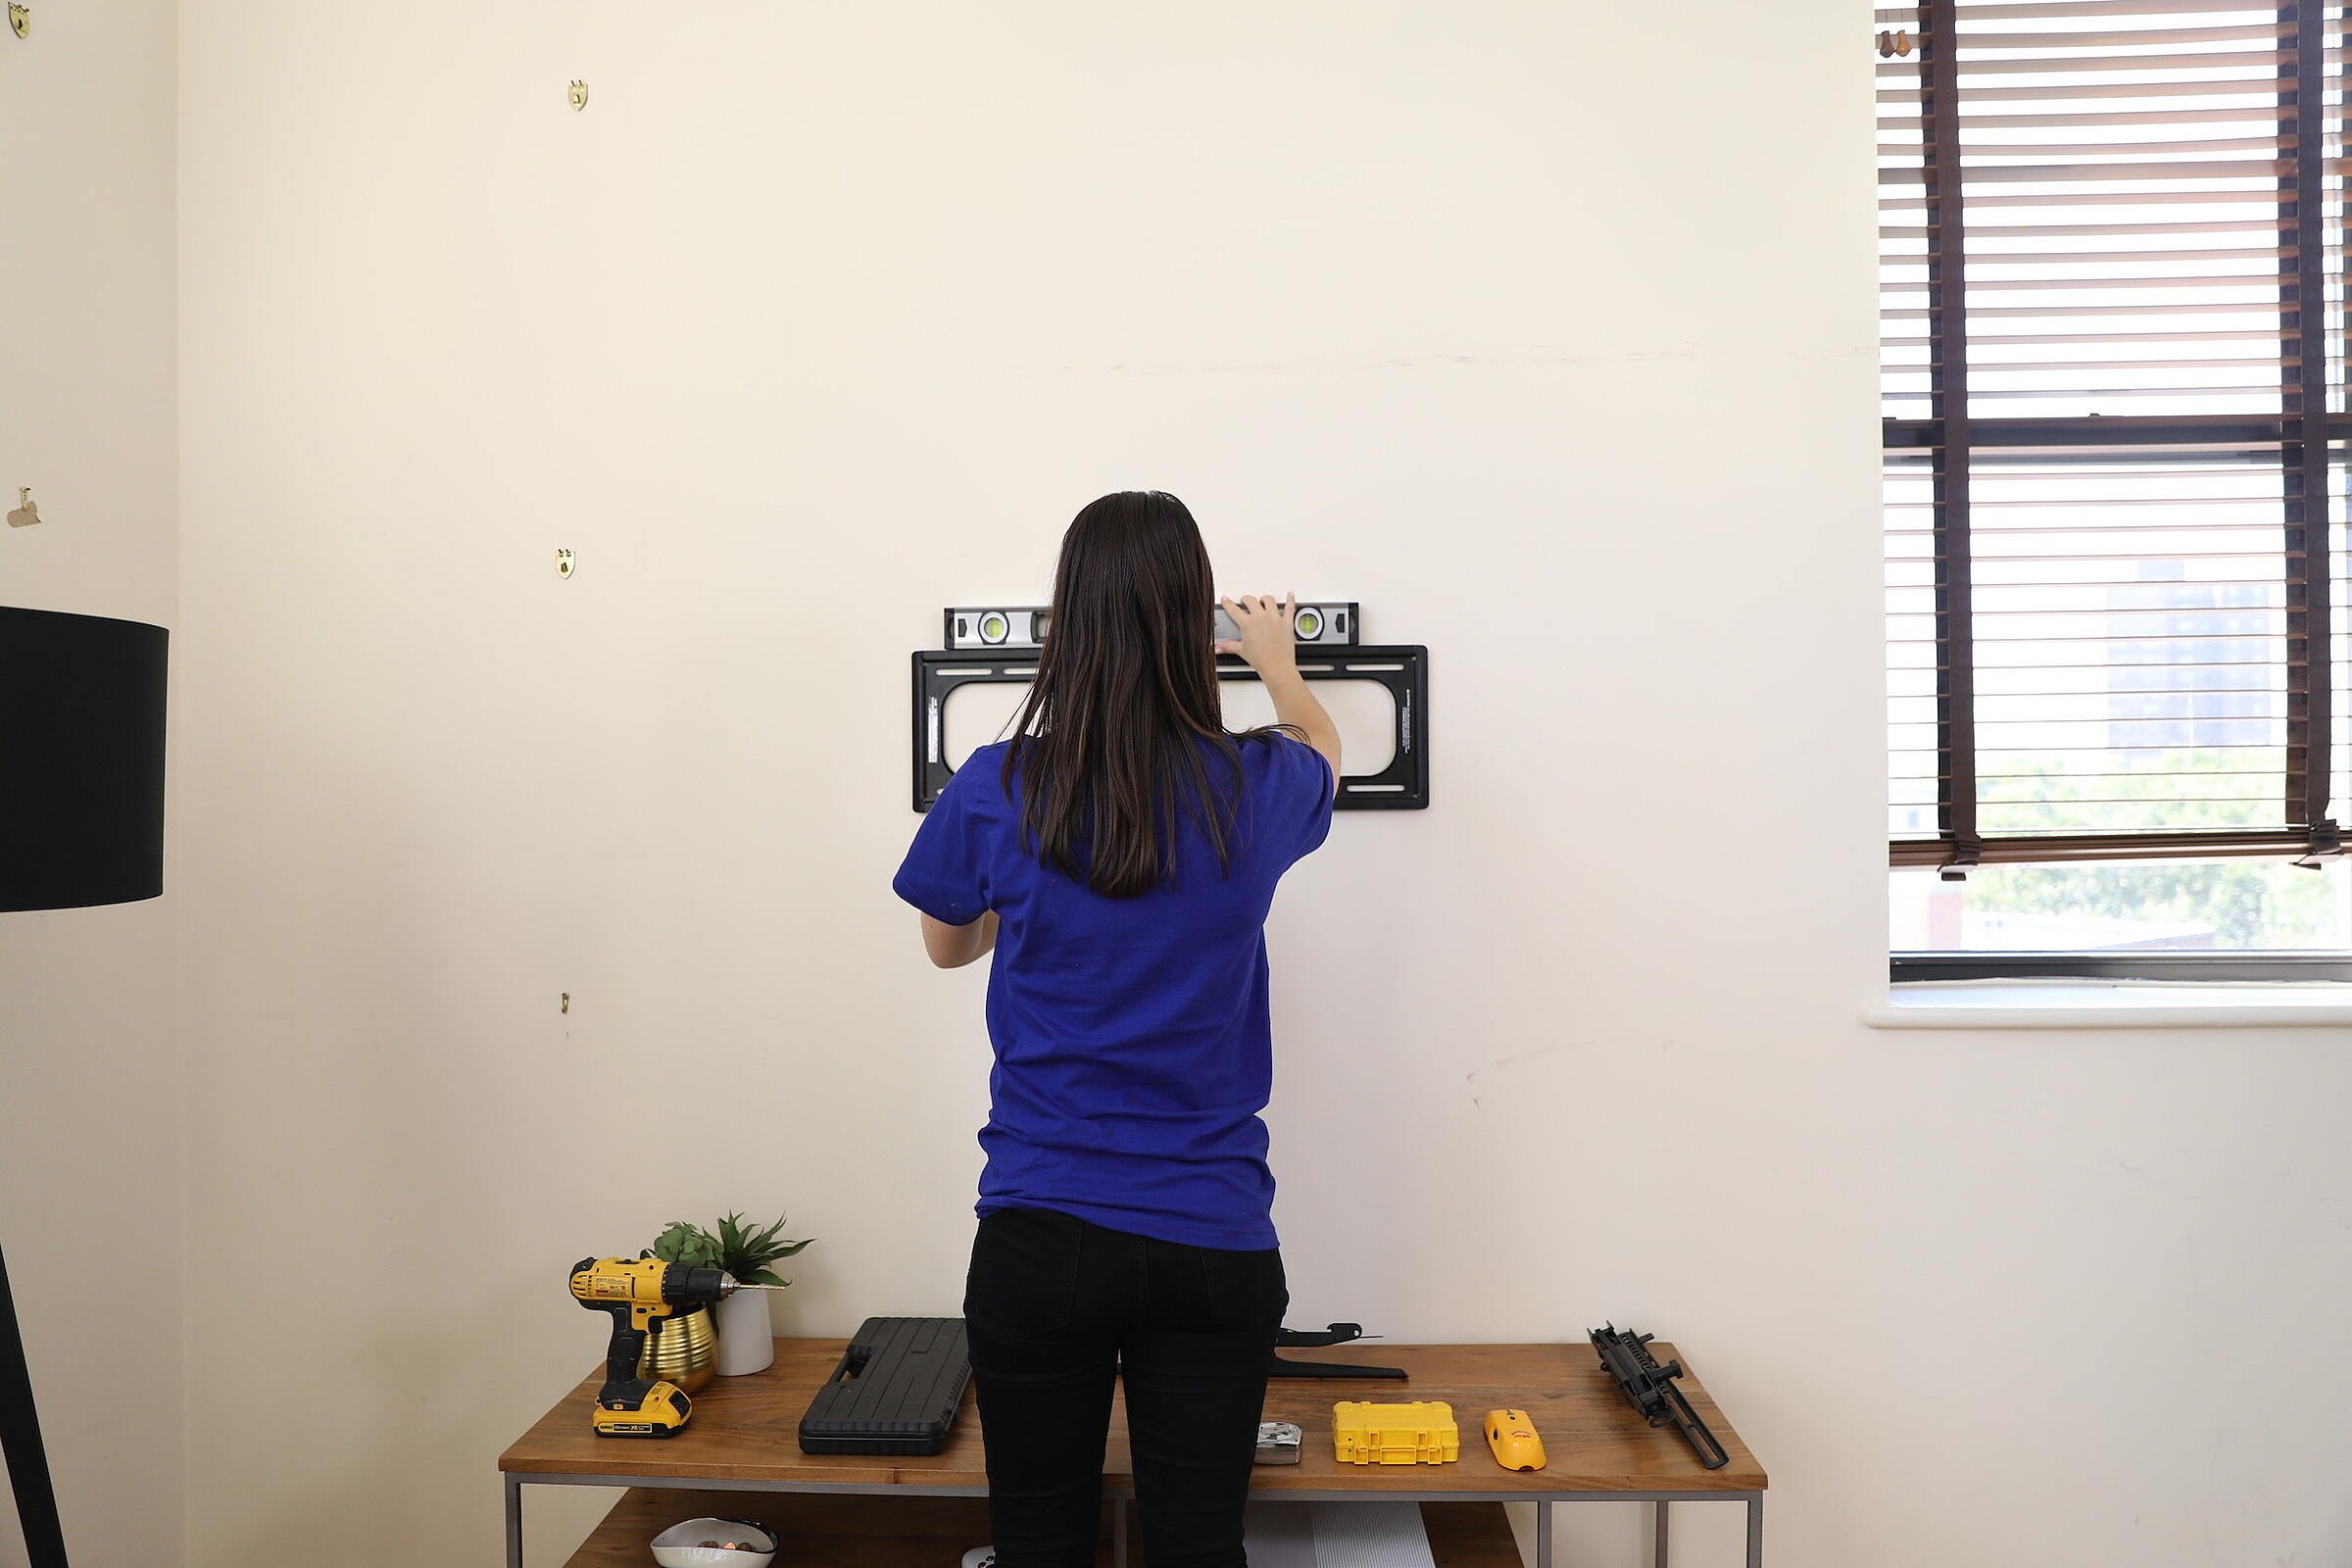 girl hanging tv mount on wall